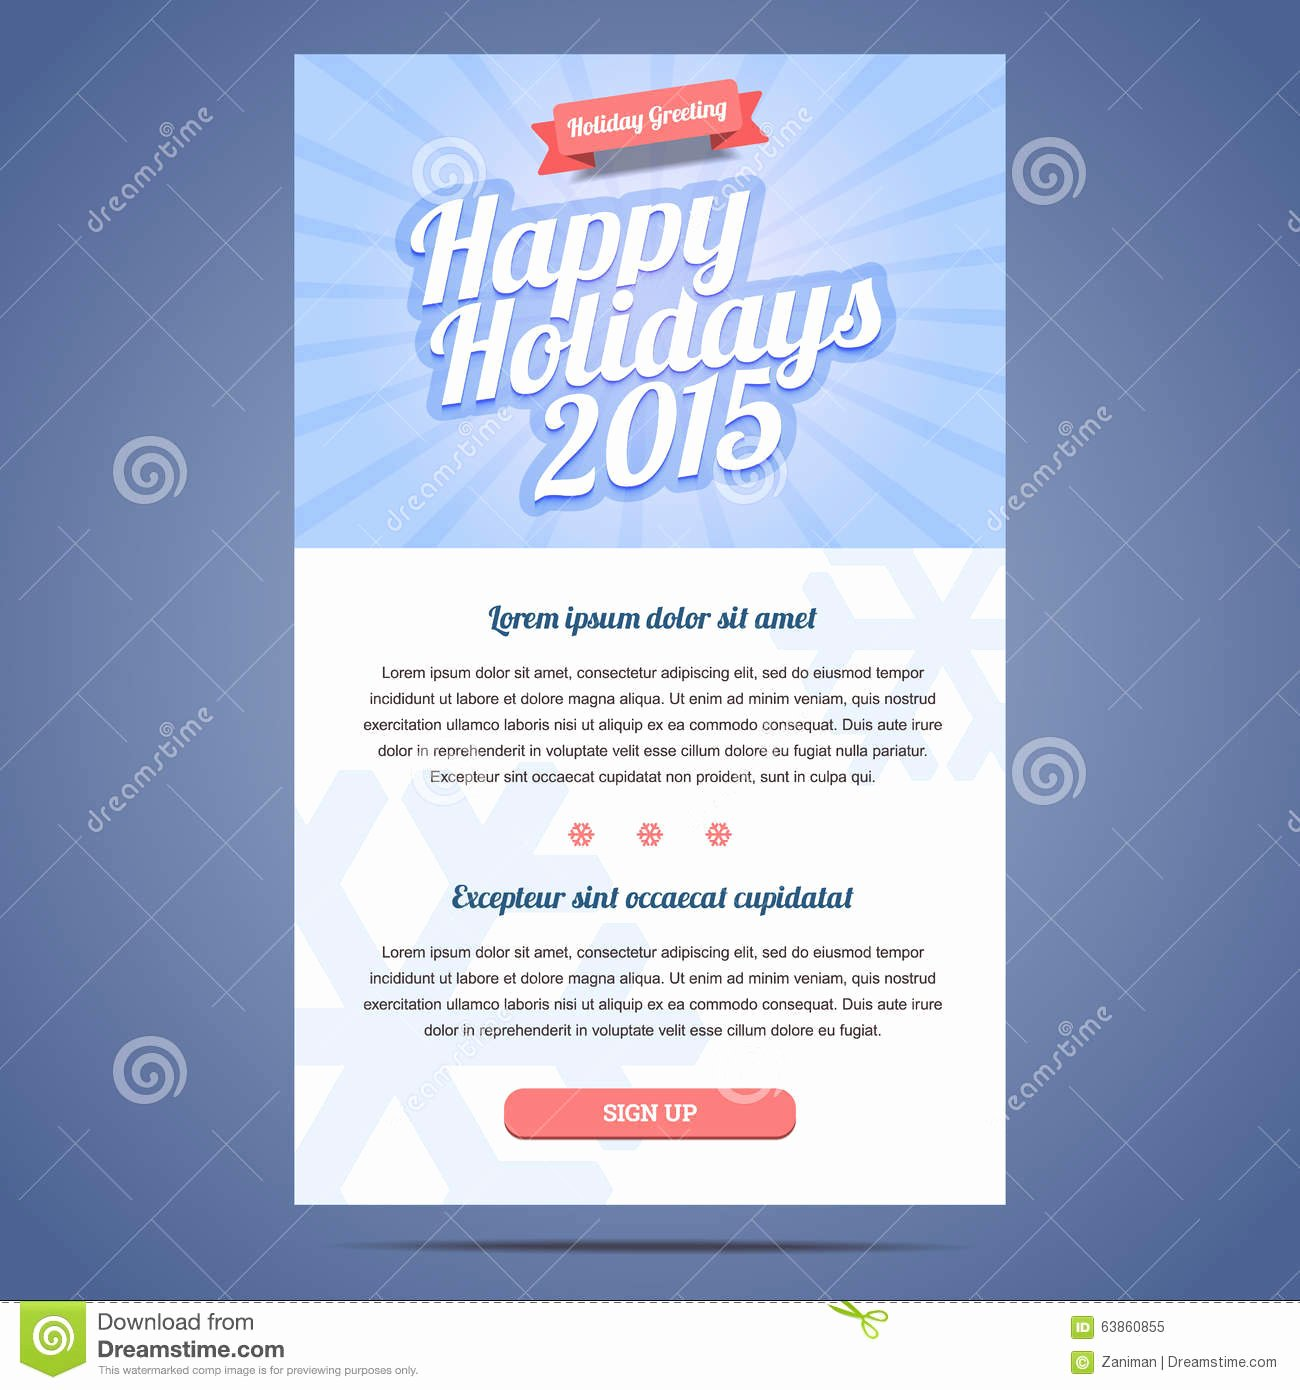 Happy New Years Email Template Elegant Email Template with Greeting Christmas and Happy Stock